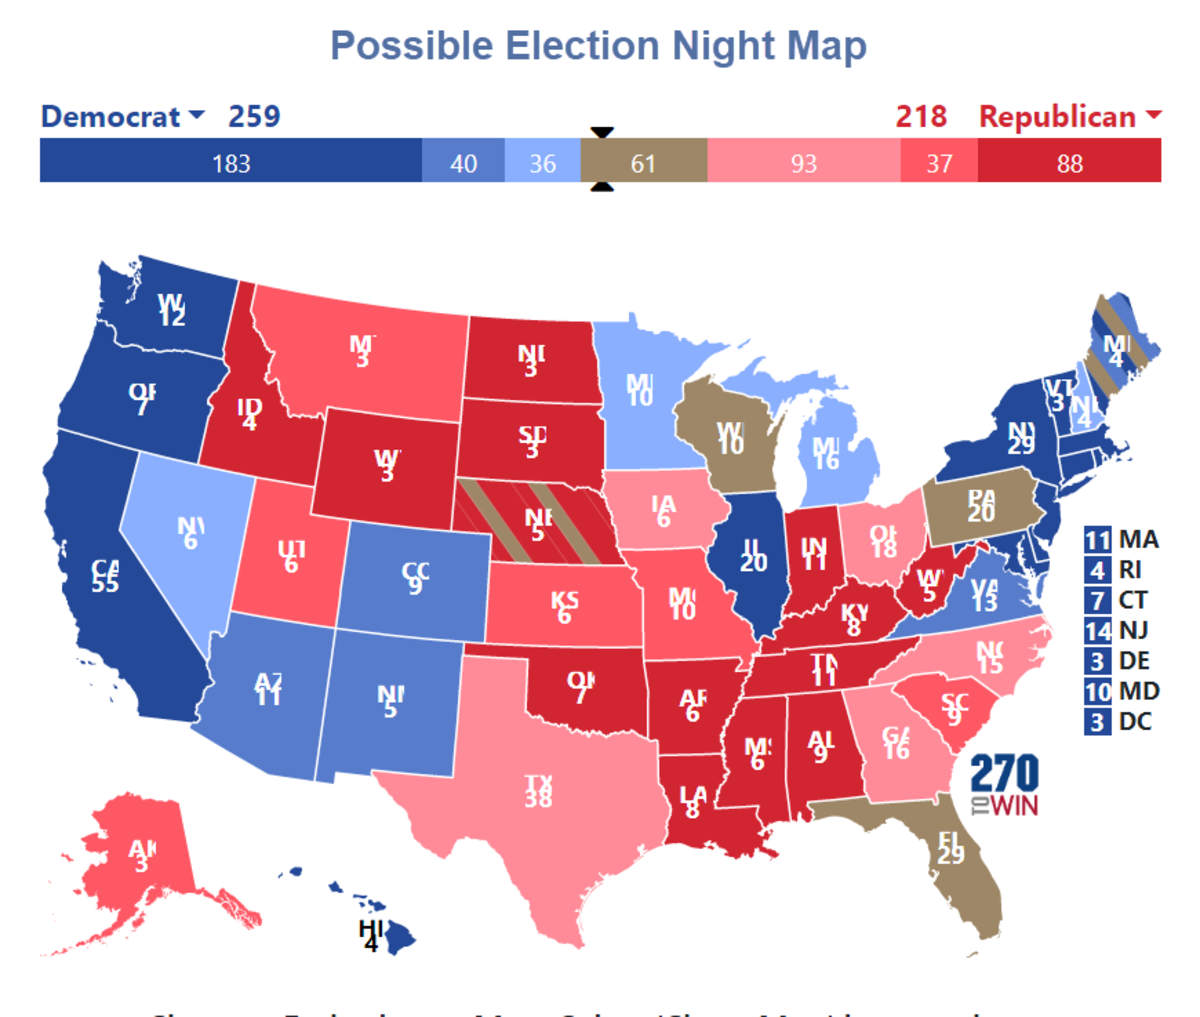 Possible Election Night Map